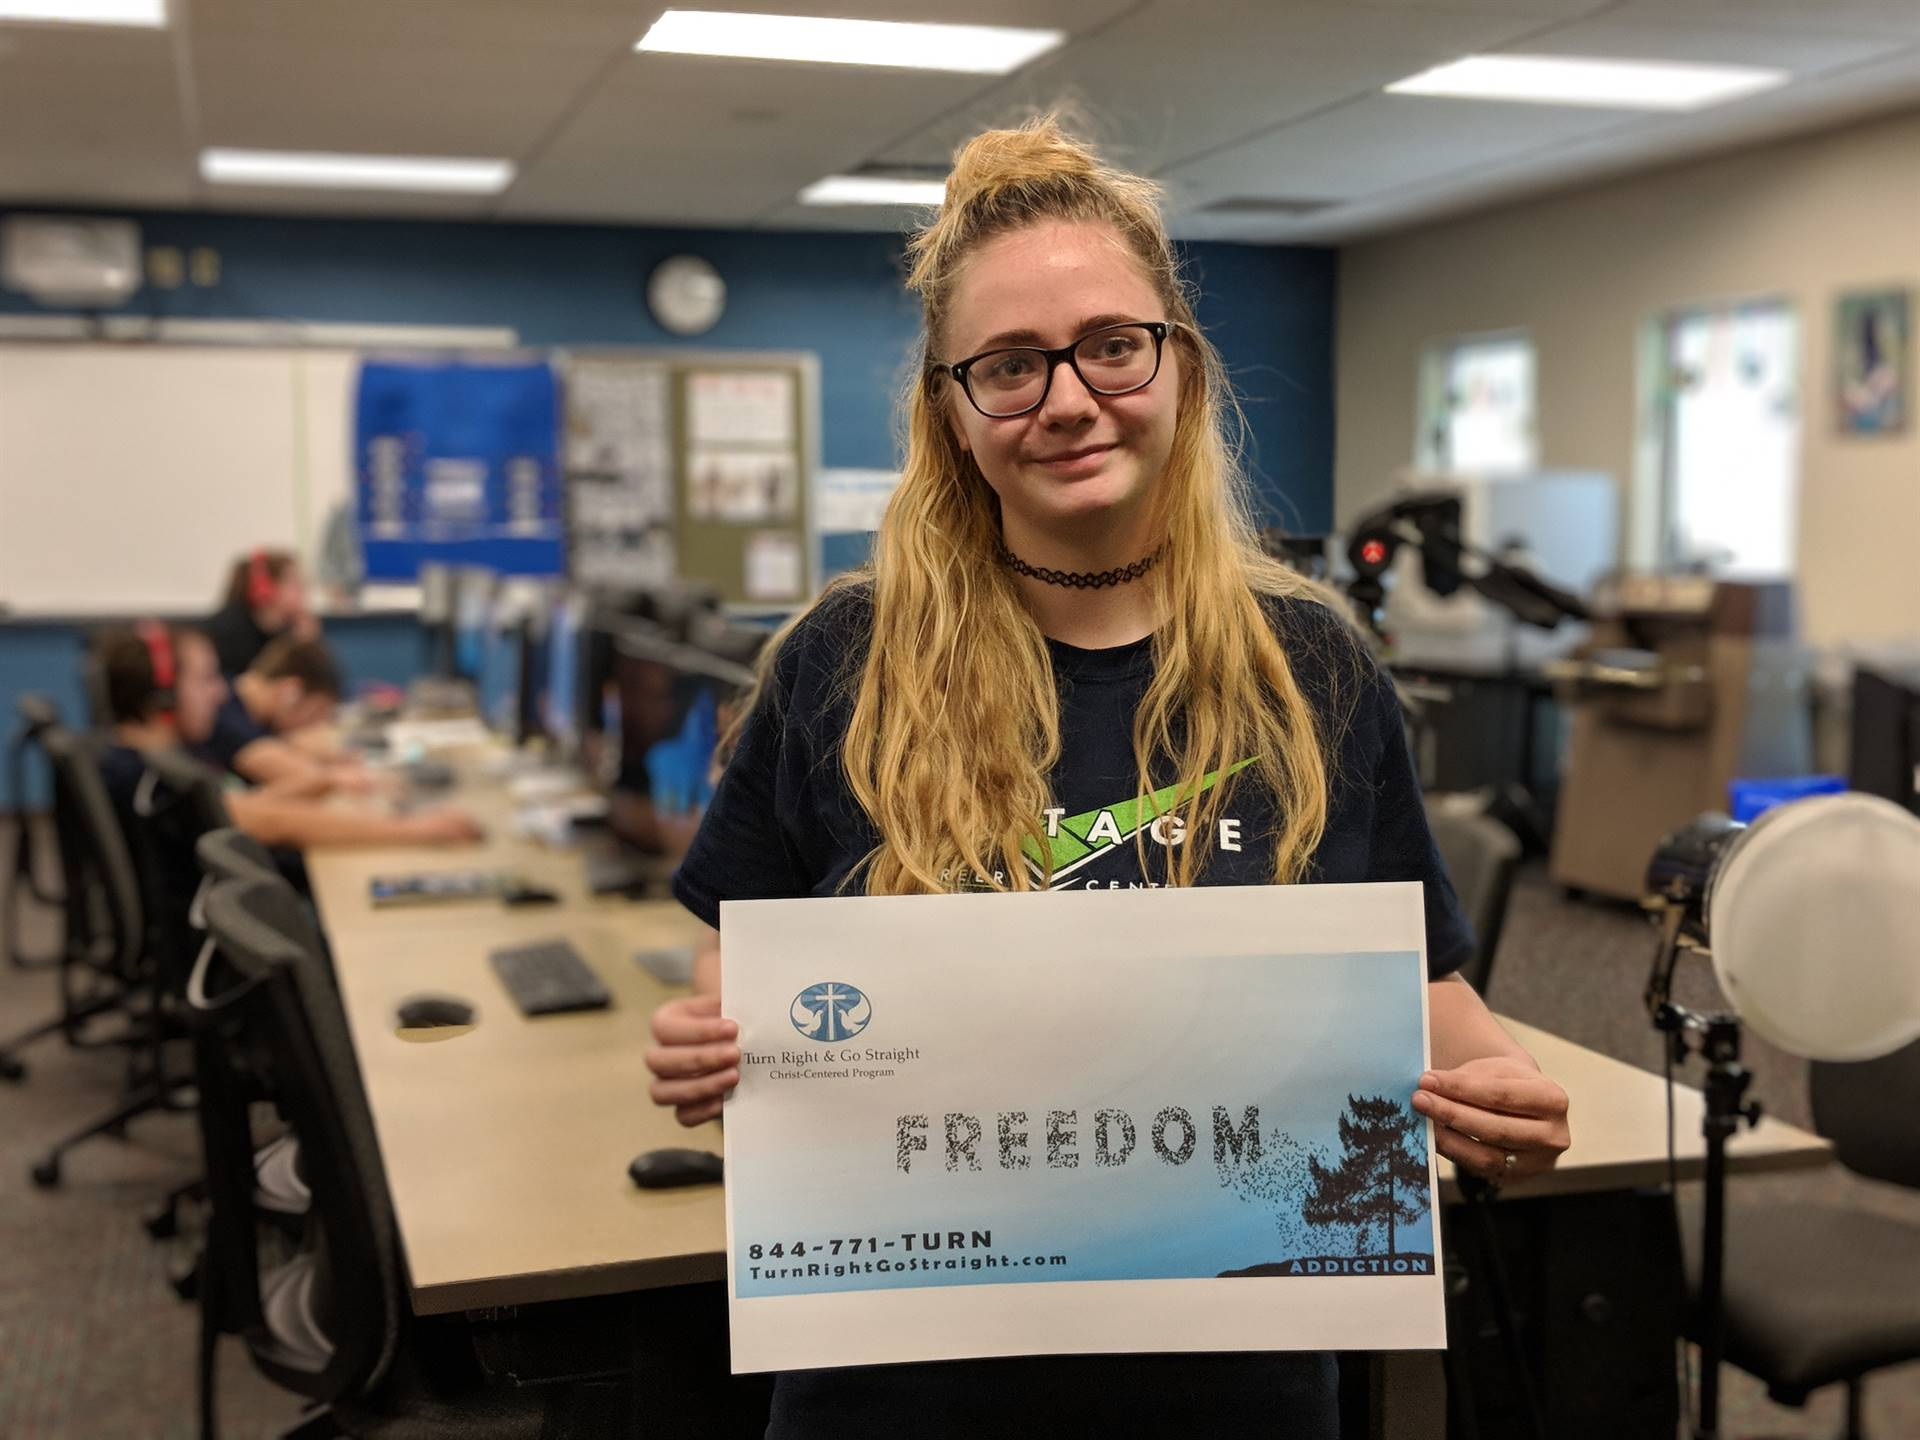 Interactive Media student designs a billboard draft for a local business.